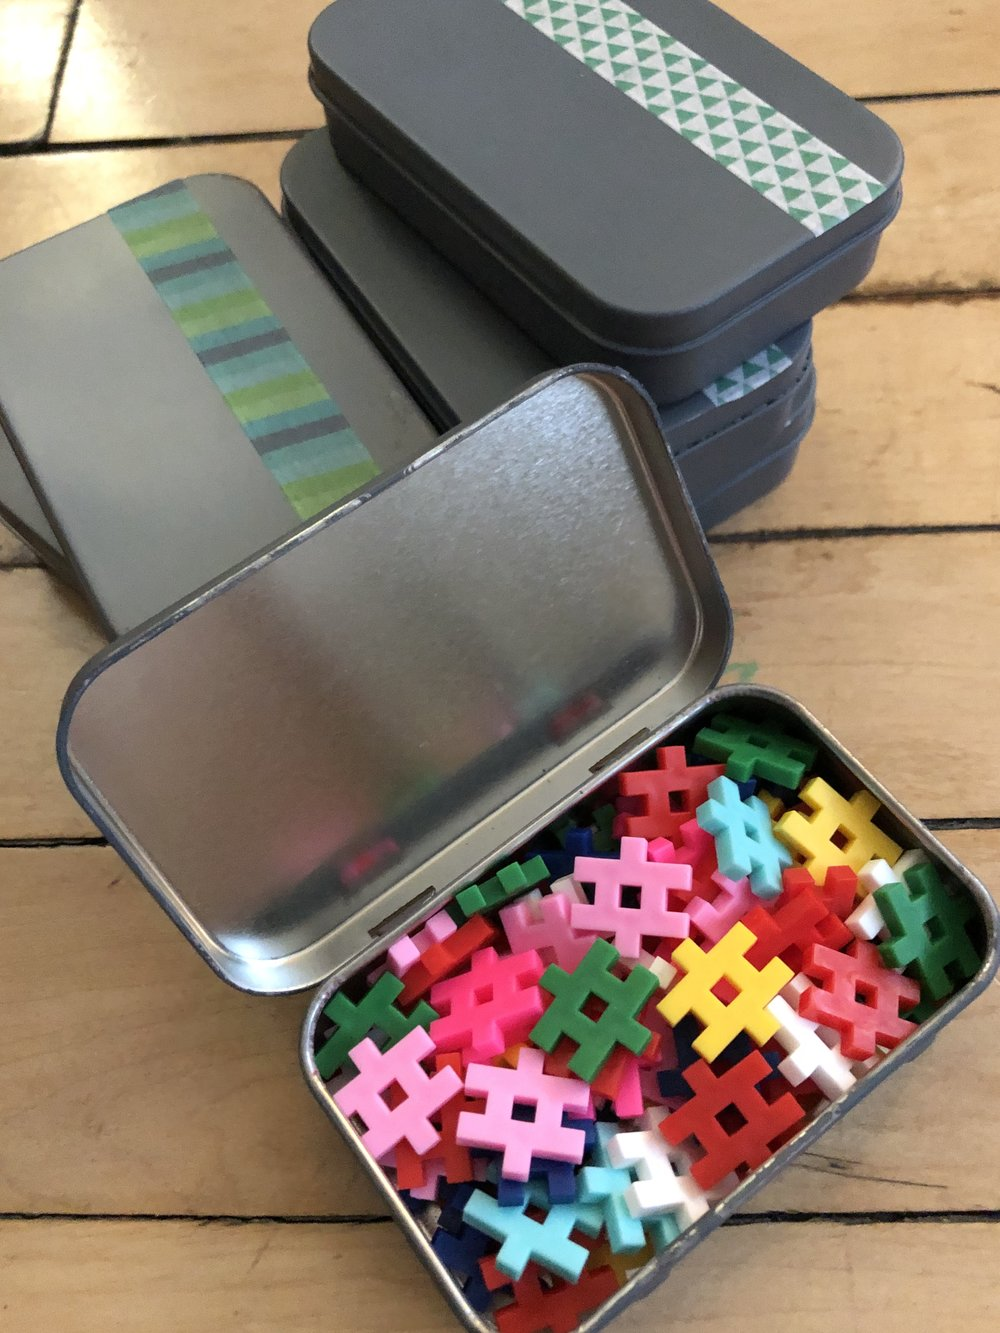 Another tin contained a variety of colors of  Plus Plus blocks . These are a great open play activity for toddlers and up - sorting, building, etc. And an off-brand variety can occassionally be found in the Target dollar aisle.